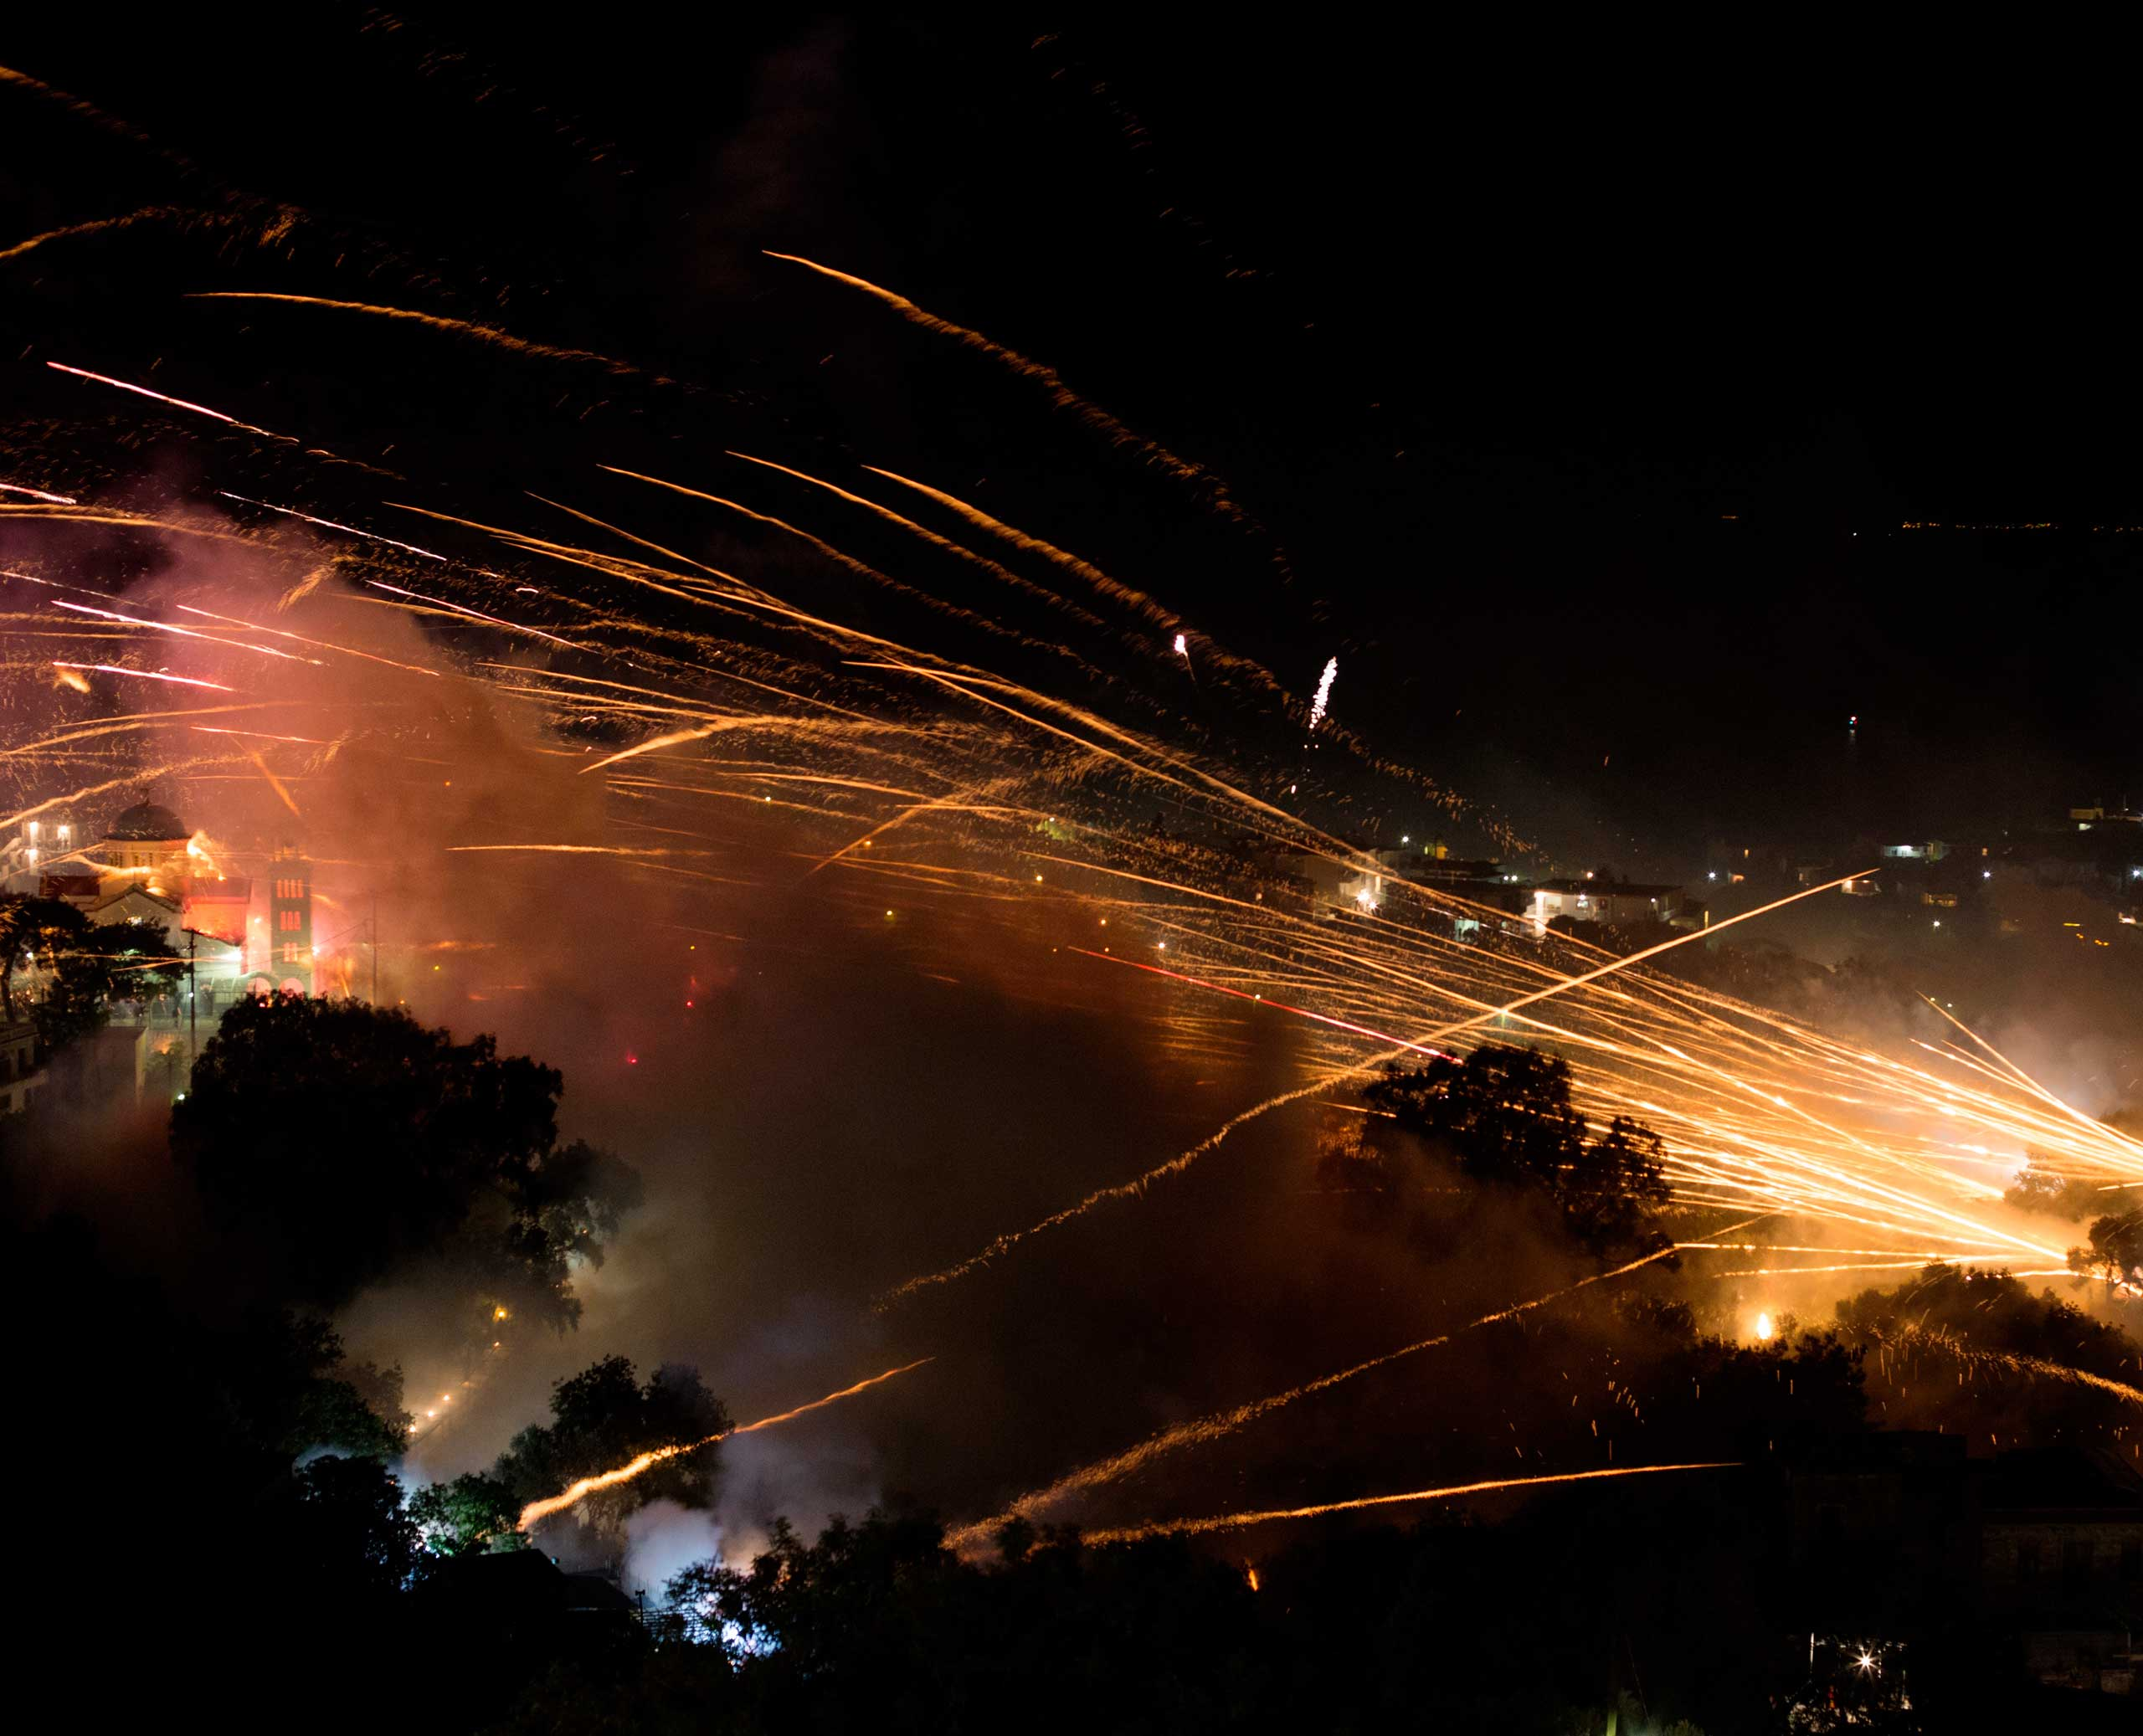 Rockets rain down on the village of in Vrontados, Chios, Greece.